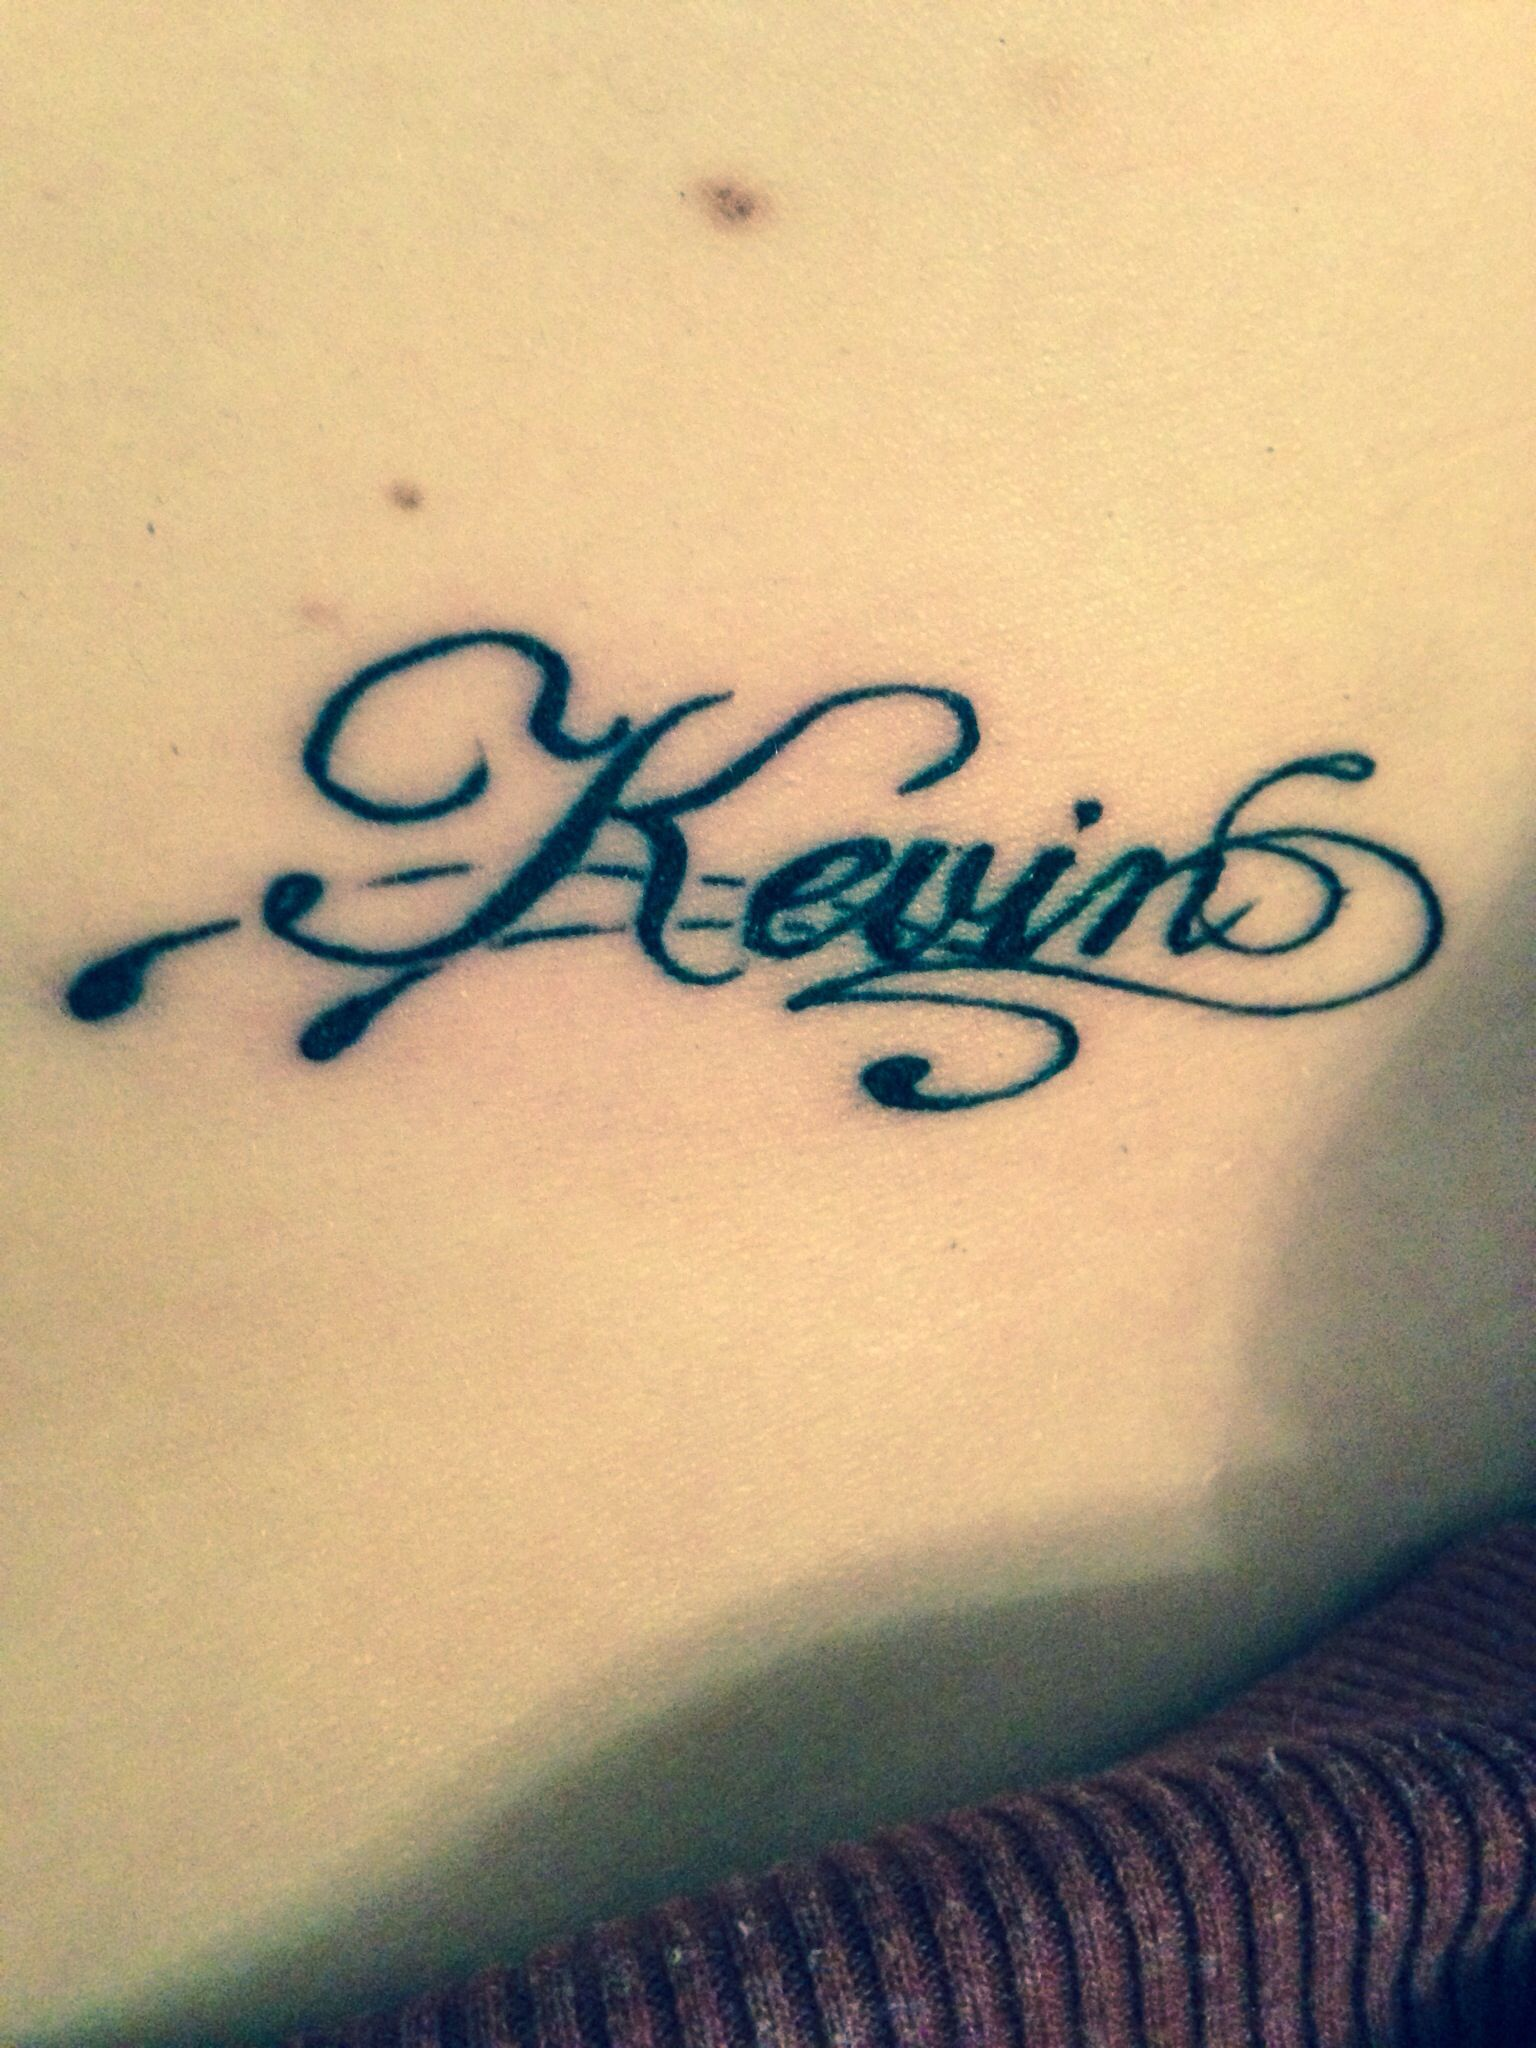 Boyfriends Name Tattoo On Hip Tattoo For Boyfriend Cute Tattoos On Wrist Boyfriend Name Tattoos